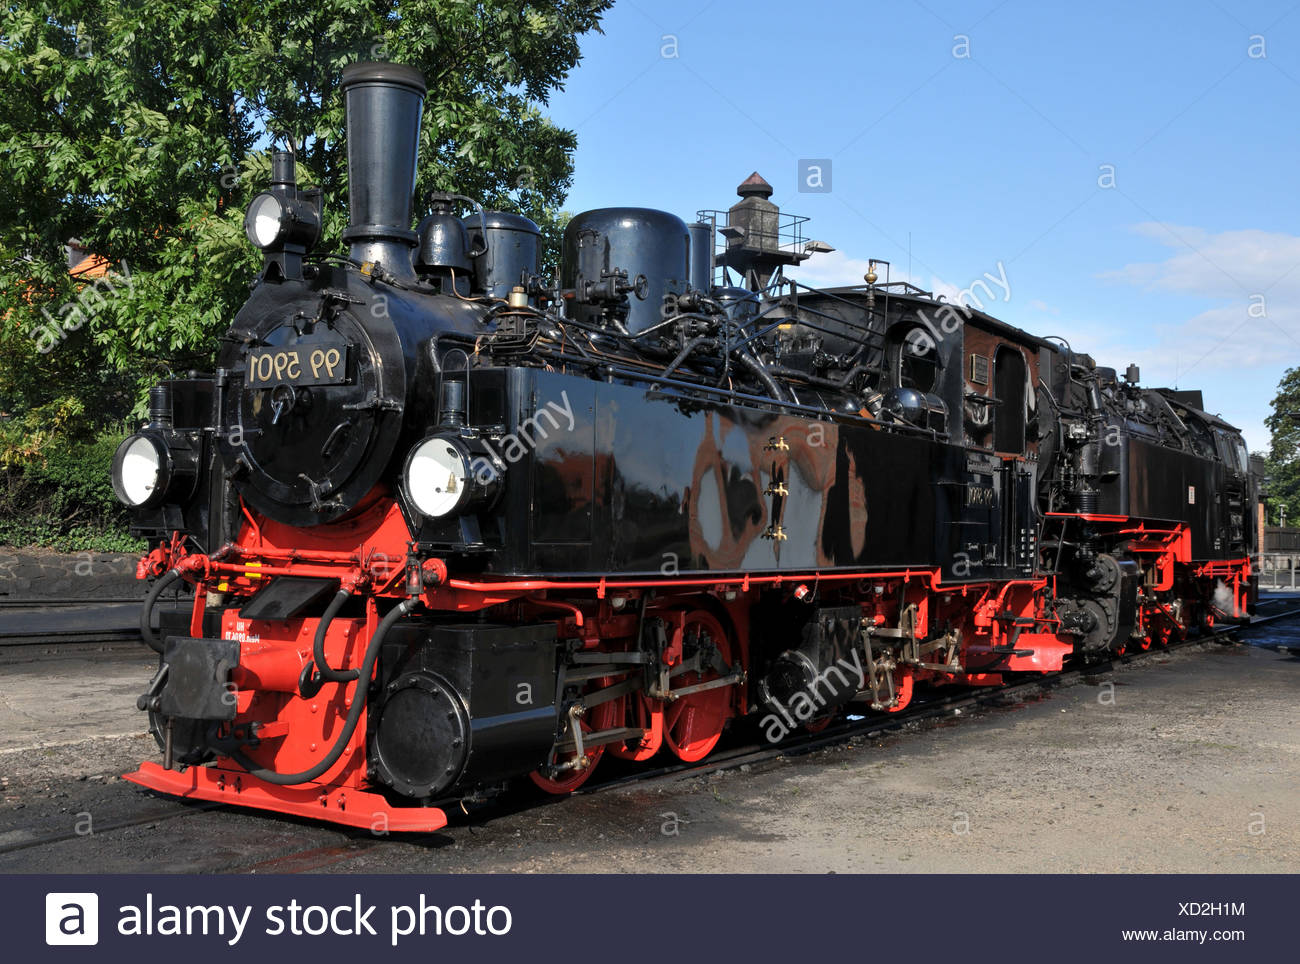 Steam engines - Stock Image